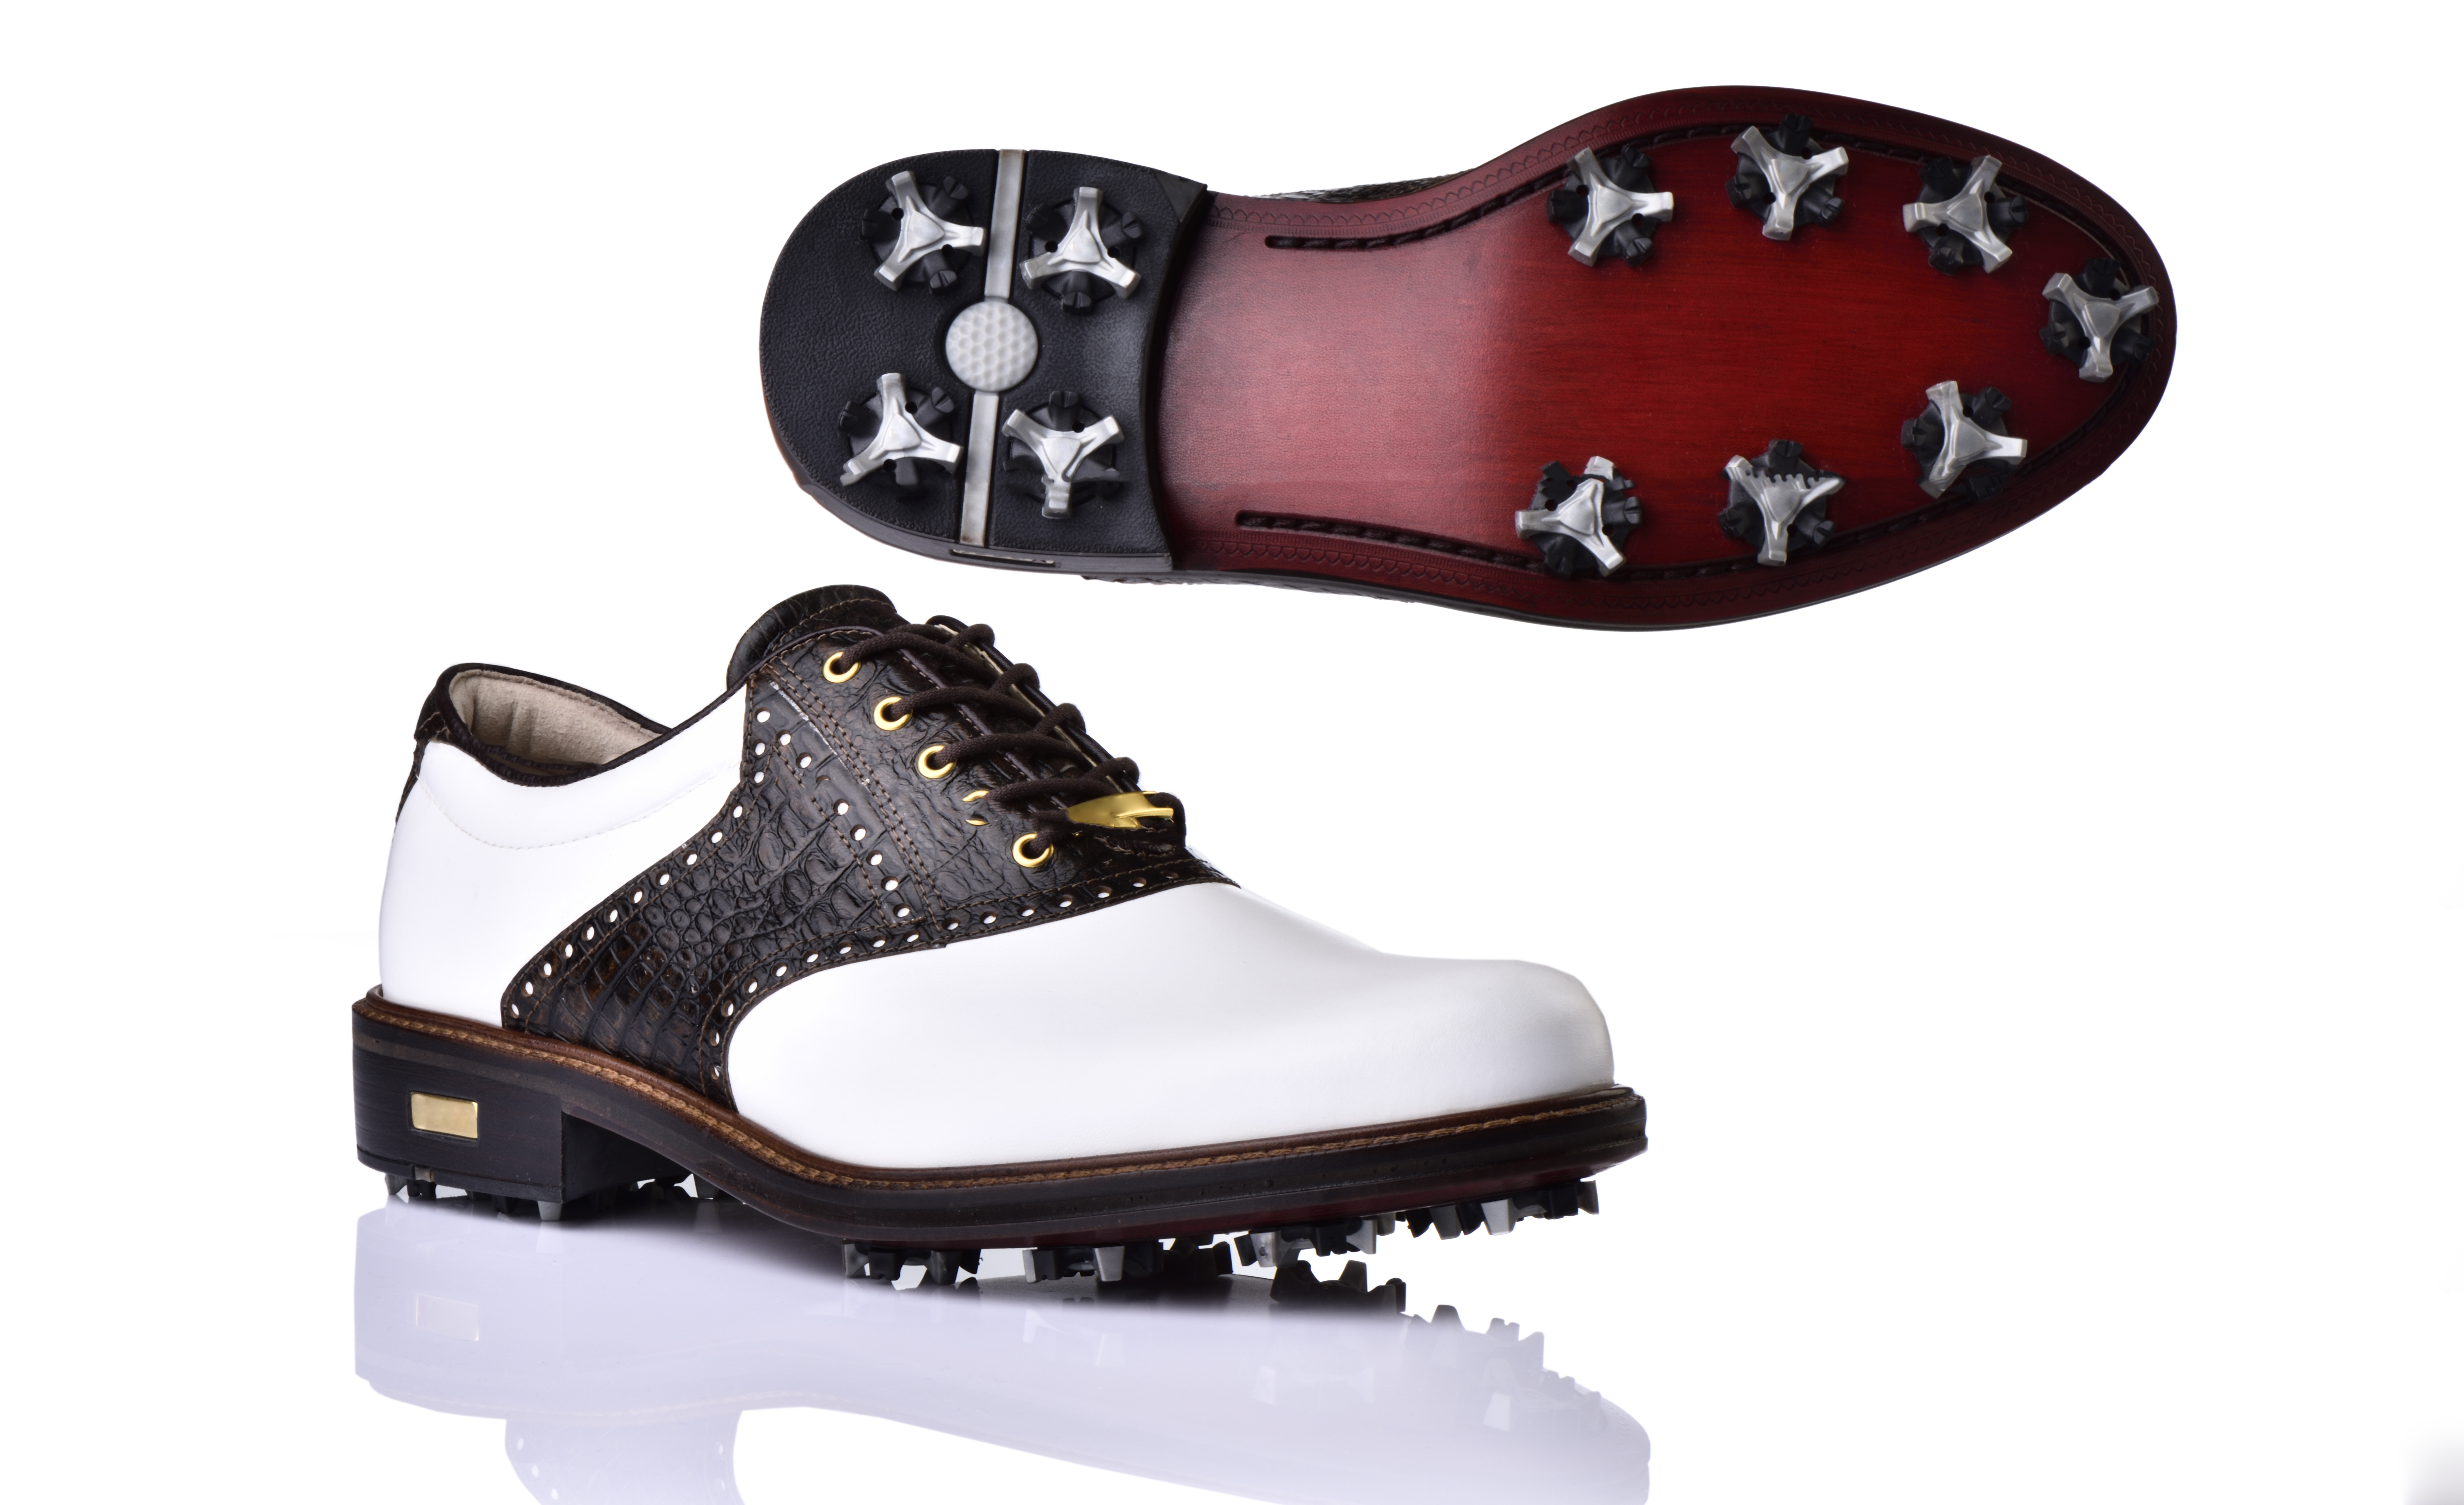 Best Spiked Golf Shoes of 2020 - Sports